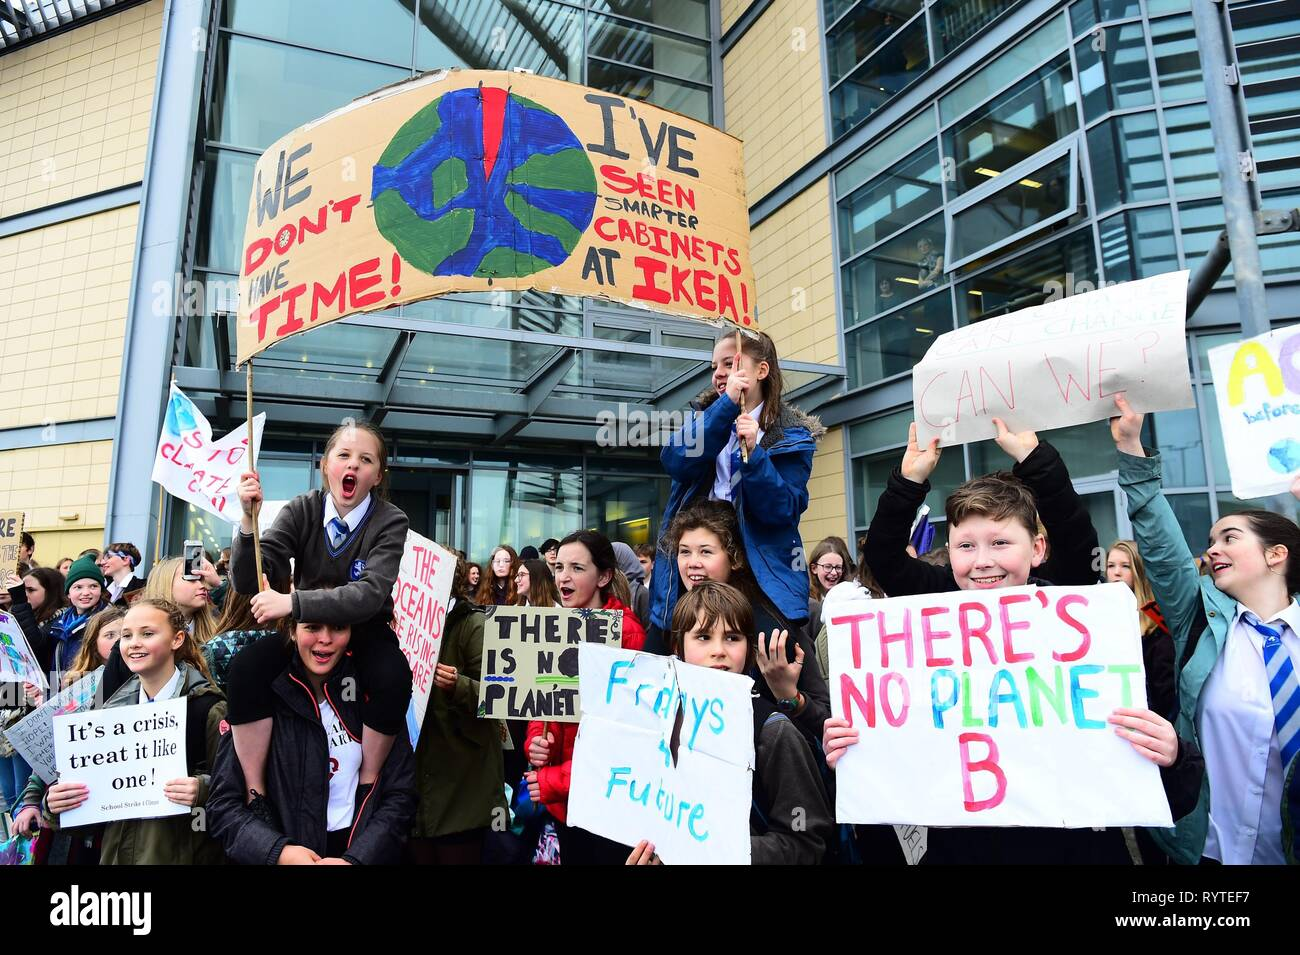 Aberystwyth Ceredigion Wales UK, Friday 15 March 2019. Pupils from local secondary schools taking part in the second UK-wide 'school strike 4 climate', protesting outside the offices of the local council in Aberystwyth Wales photo Credit: keith morris/Alamy Live News - Stock Image